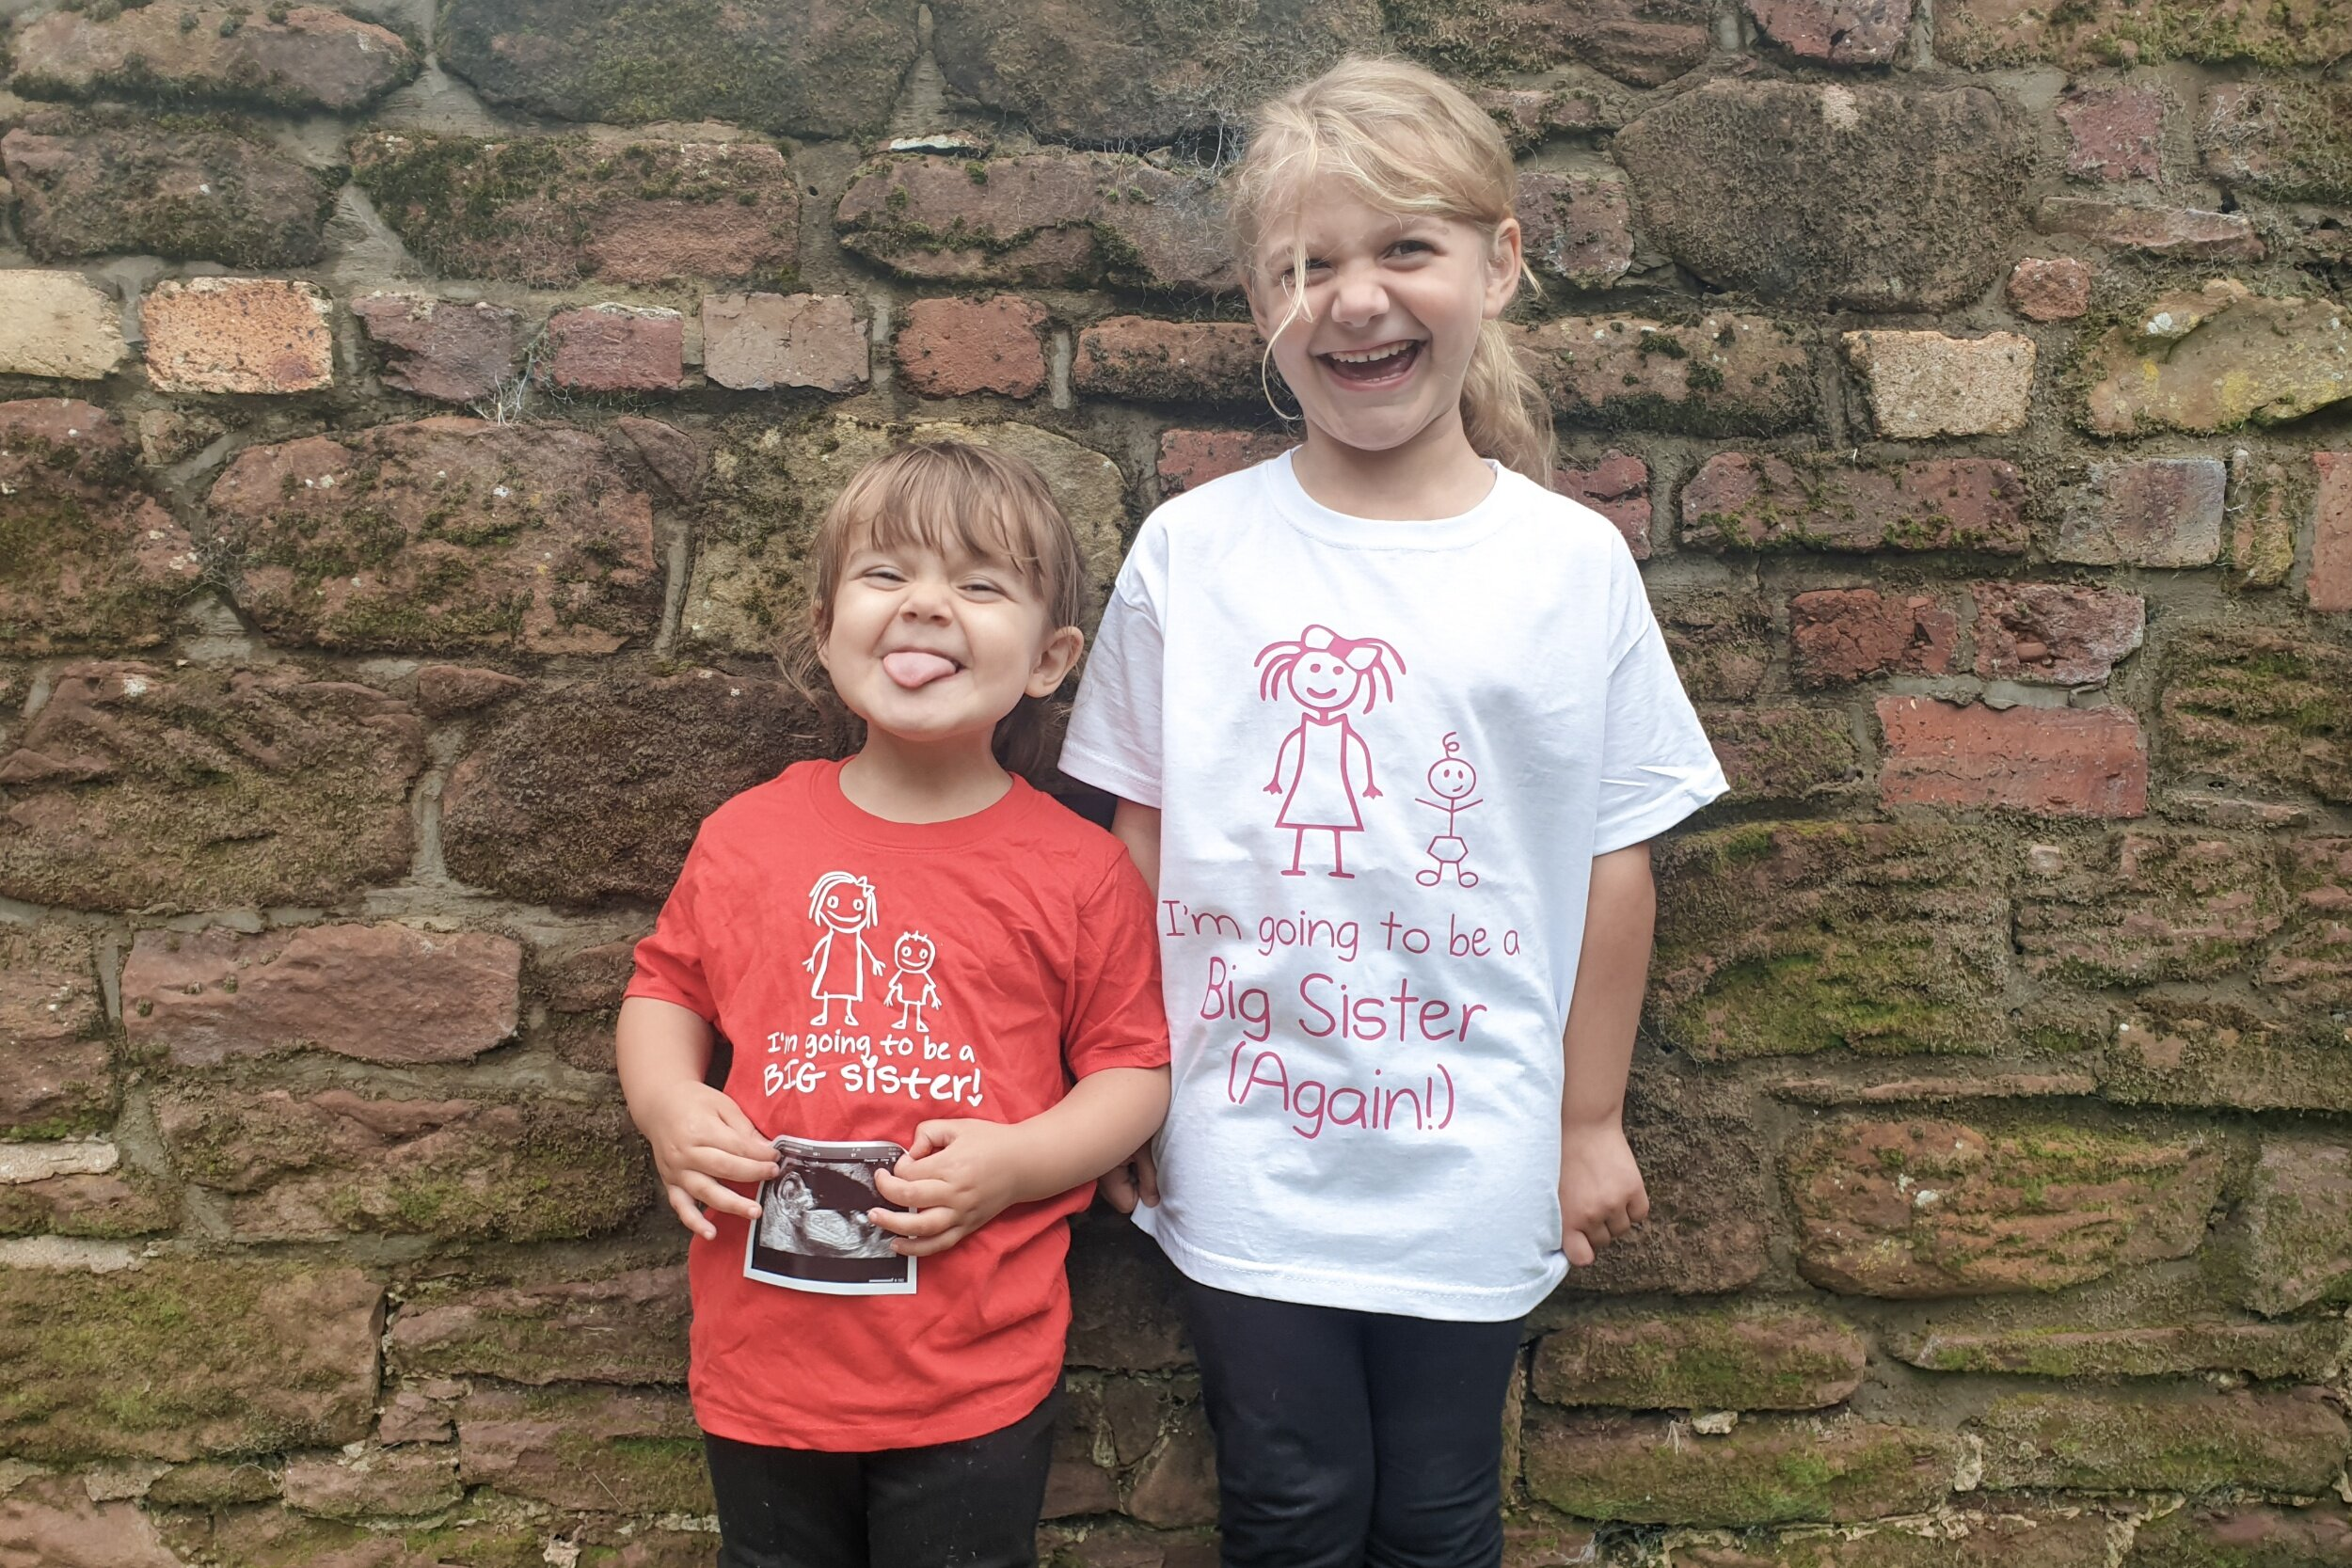 Pregnancy number three announcement, I'm going to be a big sister t-shirt